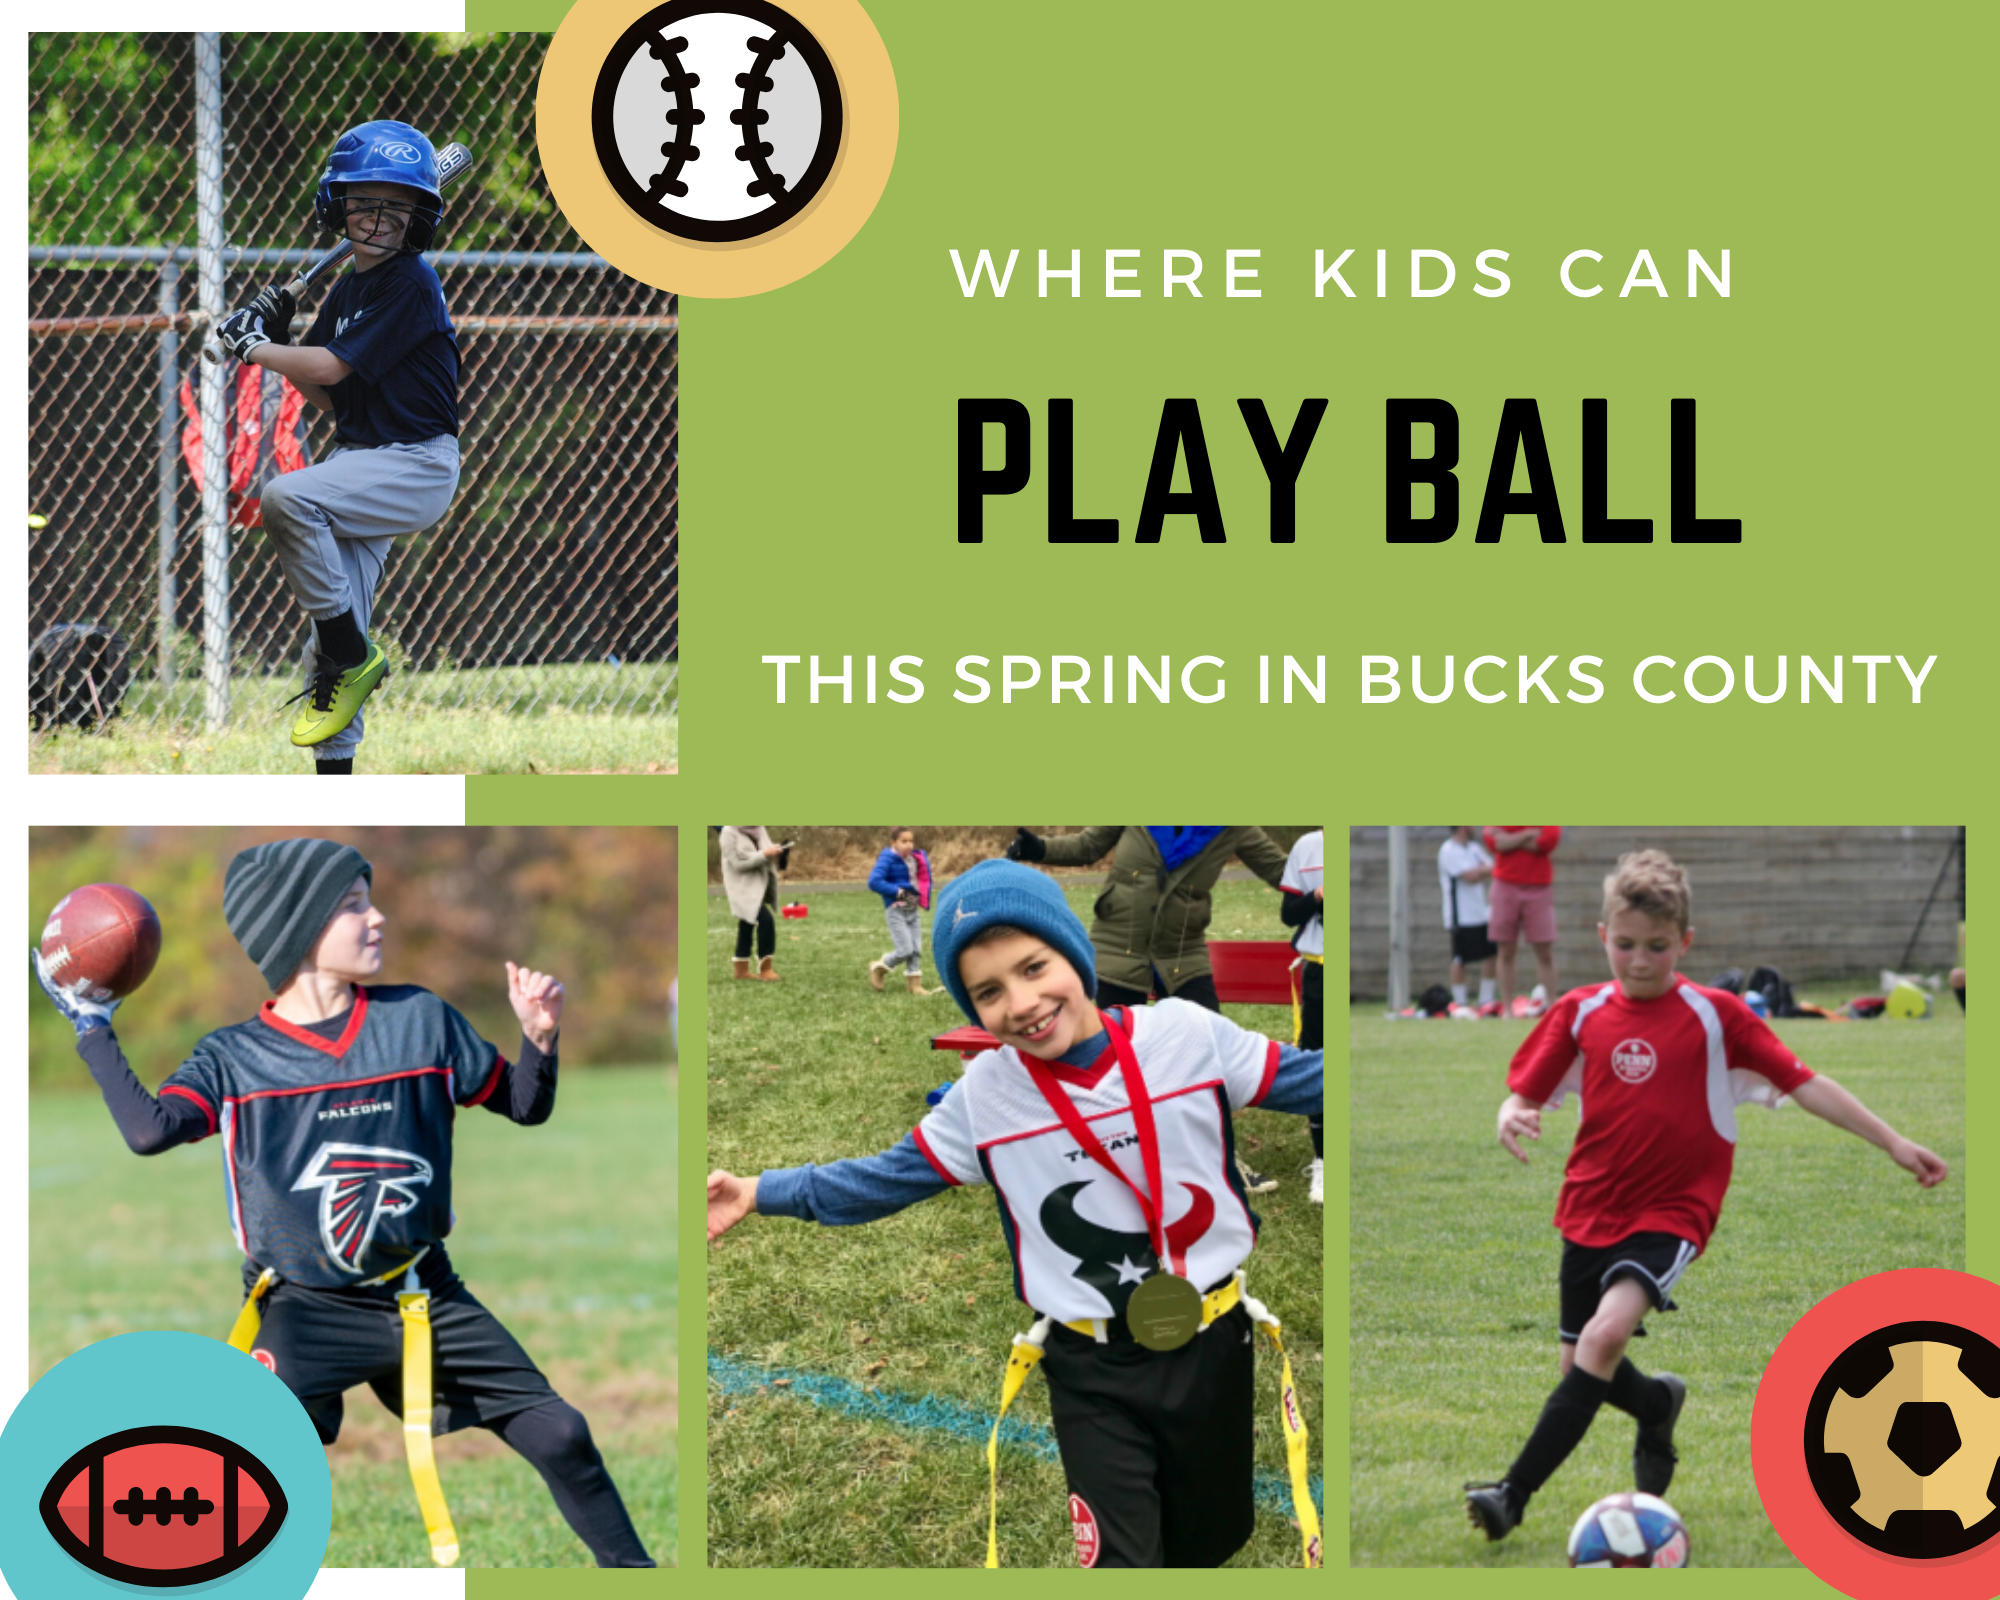 Where Kids Can Play Ball This Spring in Bucks County